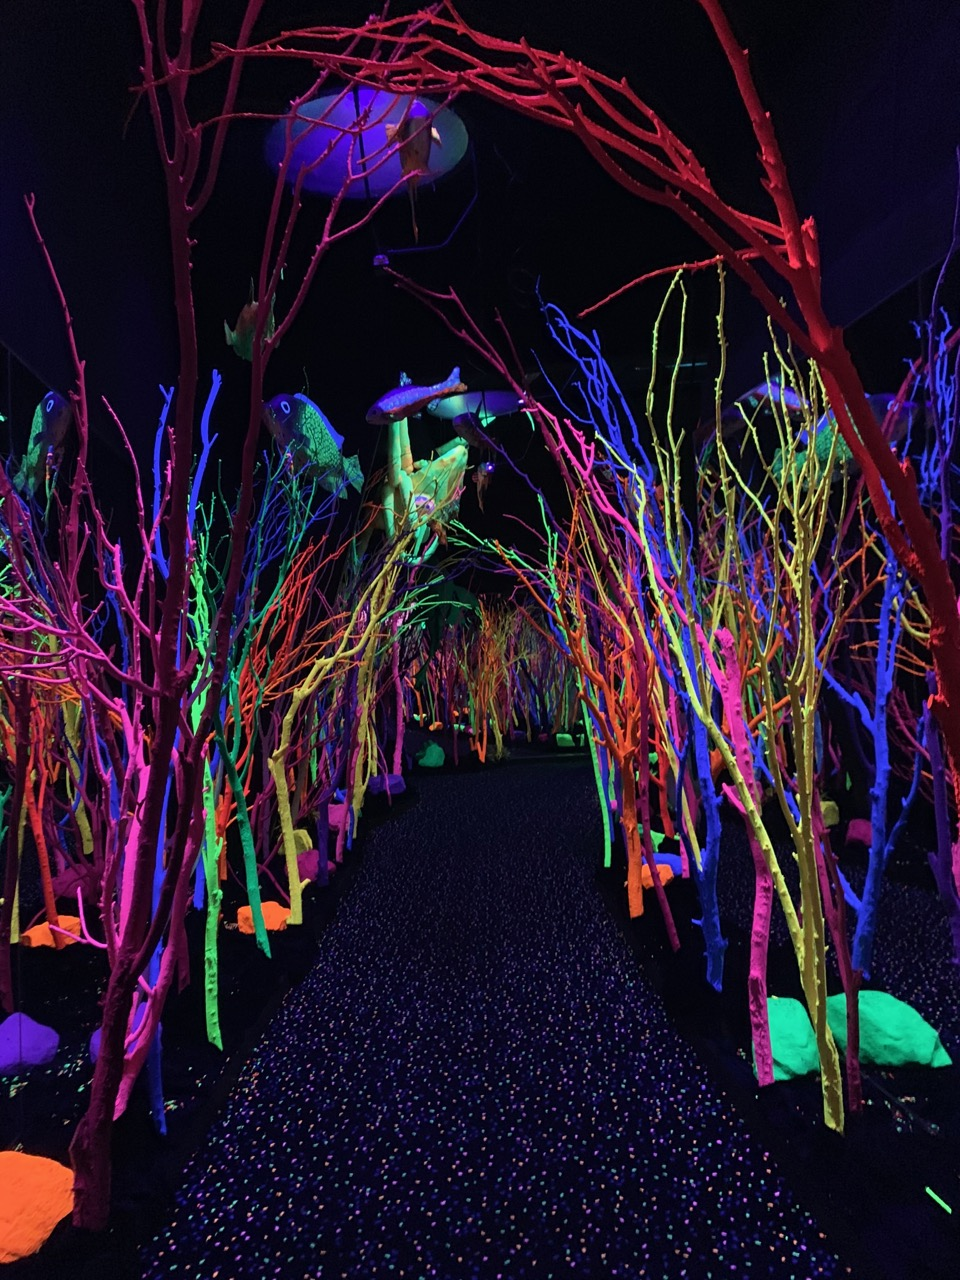 A blacklit corridor meant to resemble being under the sea